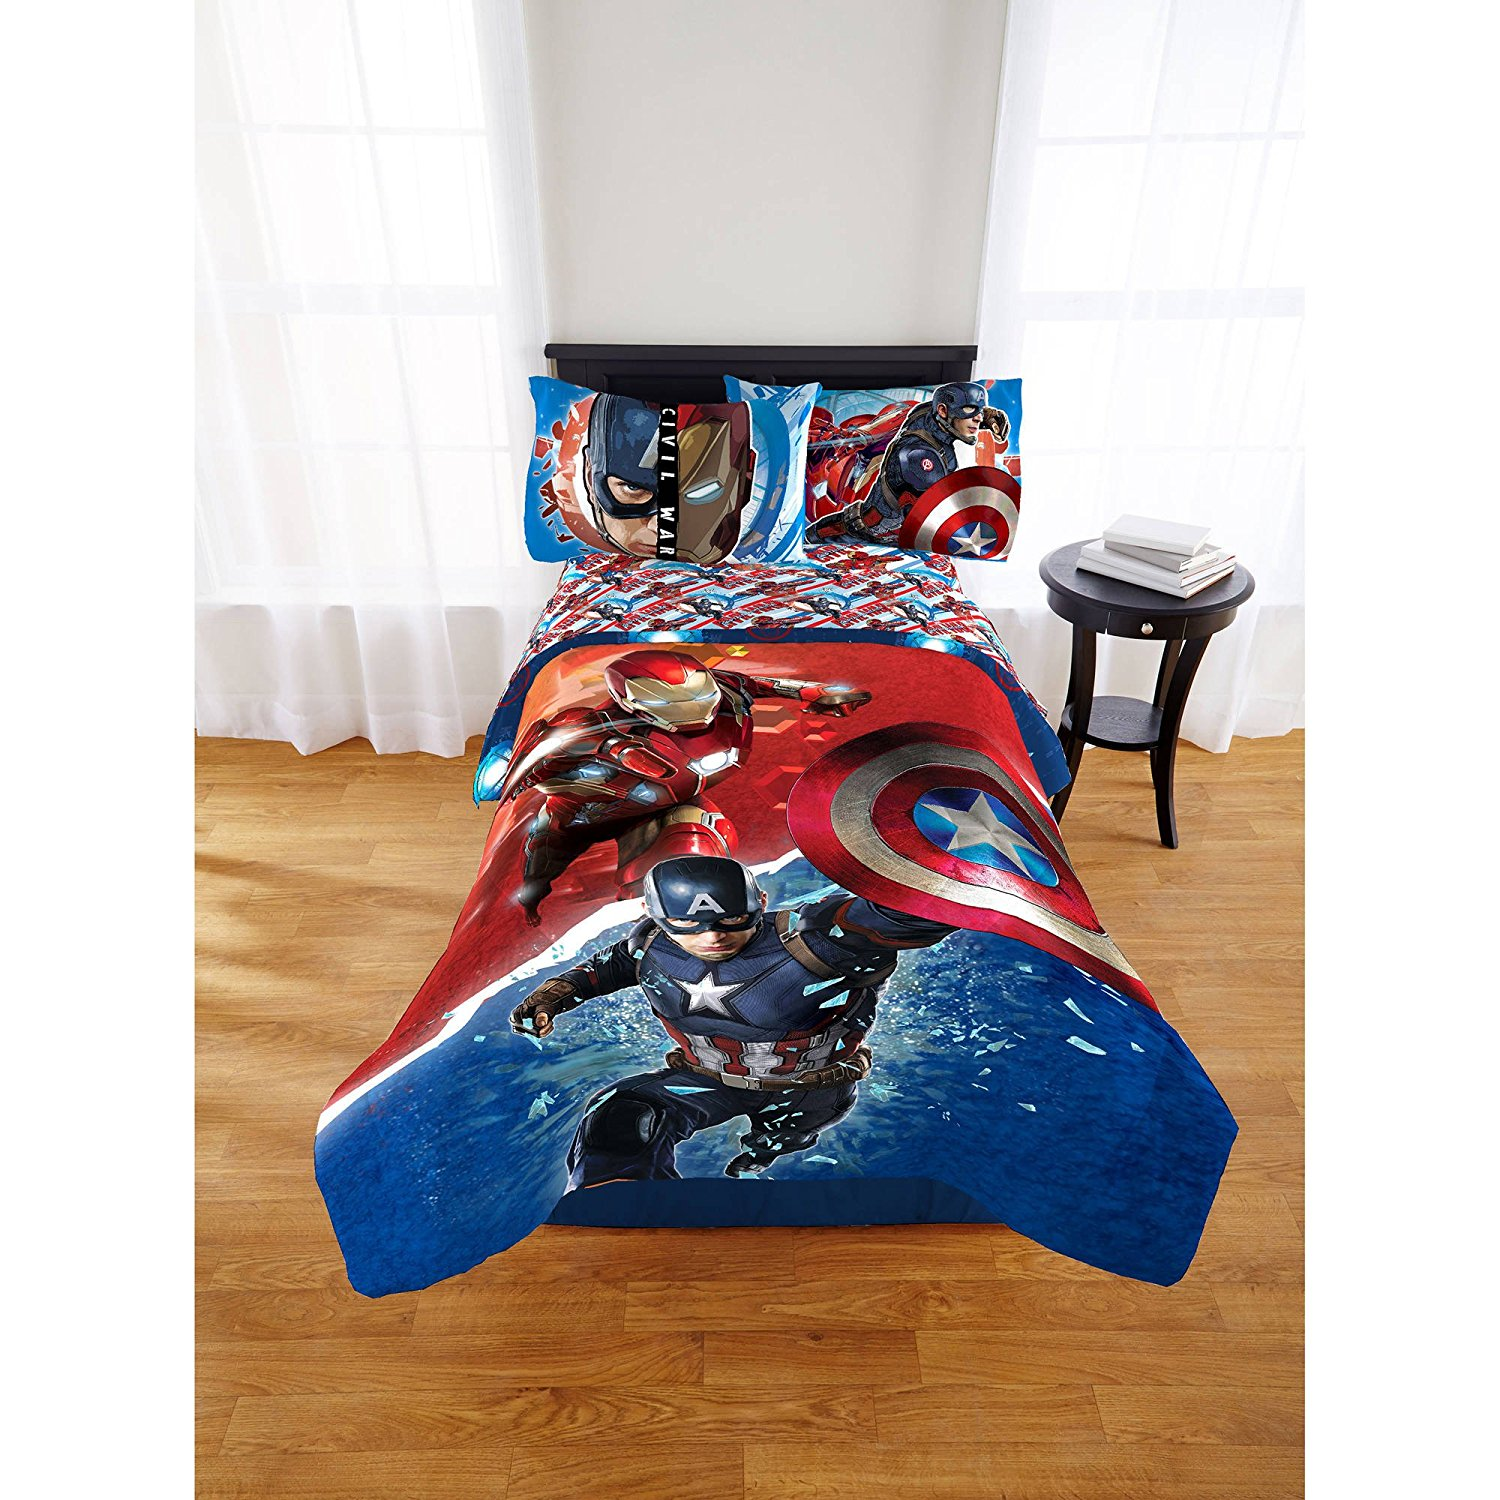 Captain America Civil War Marvel Avengers Boys Full Comforter & Sheets (5 Piece Bed In A Bag) + HOMEMADE WAX MELT